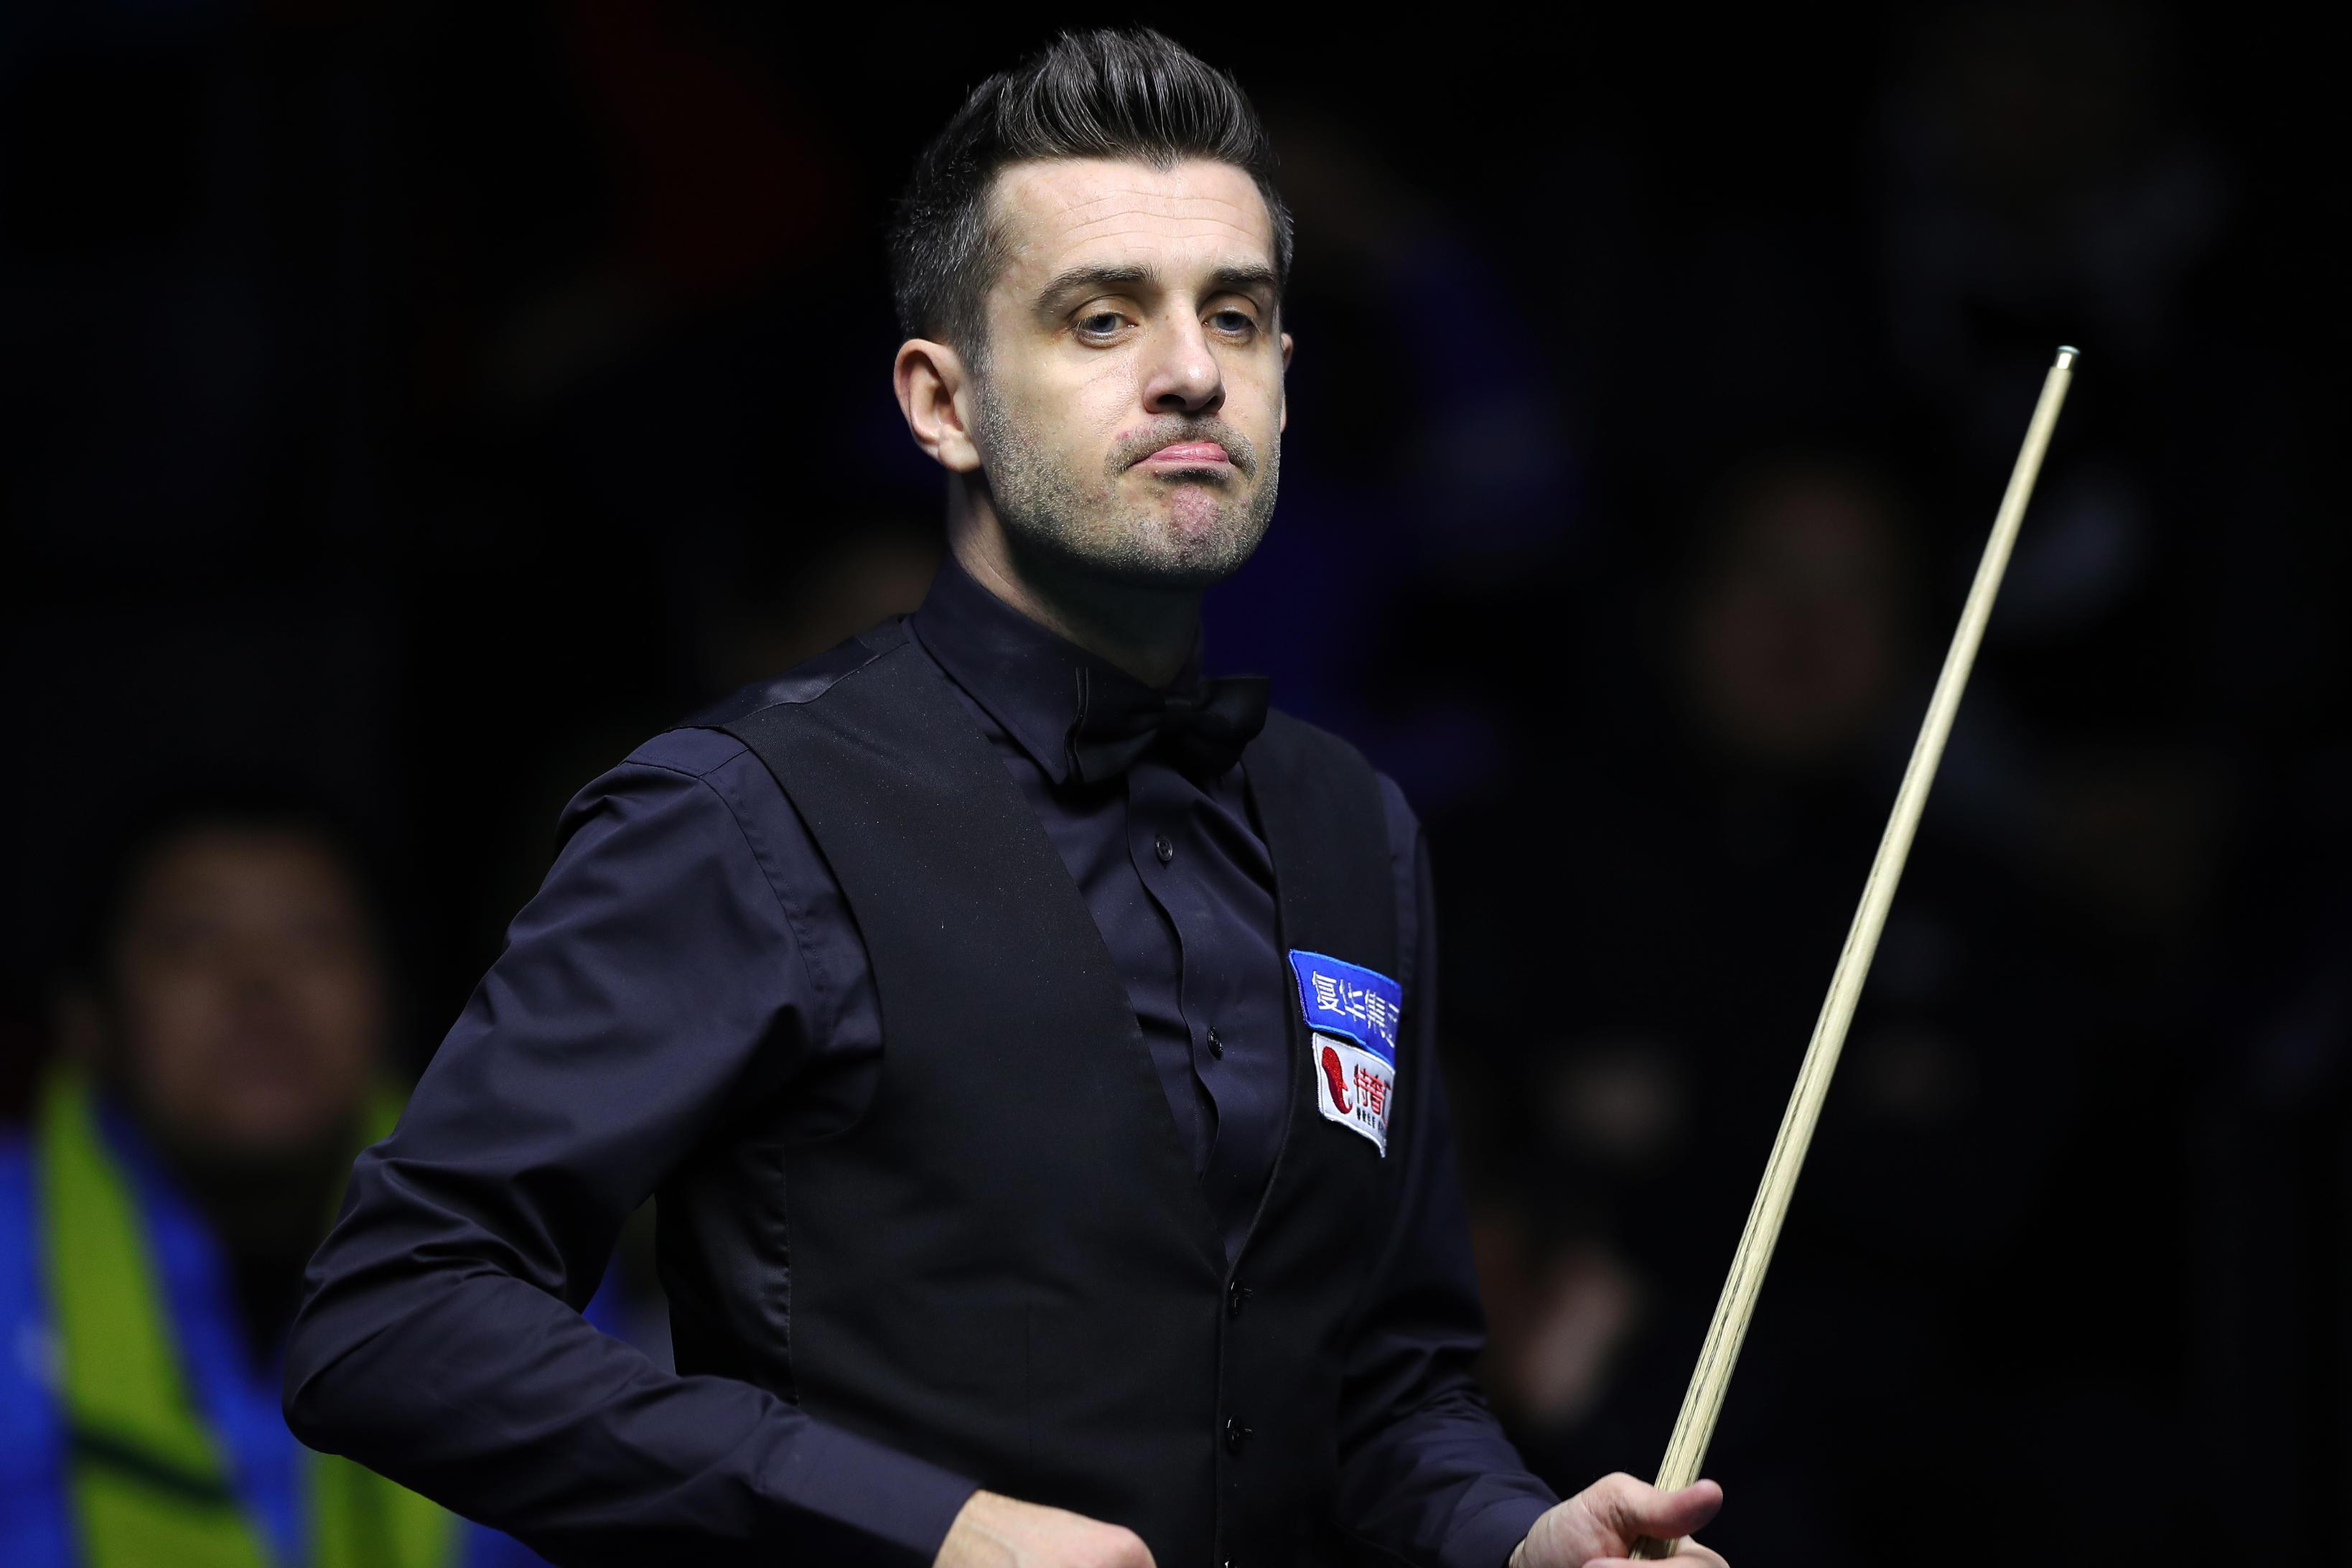 Selby will open the 2018 tournament with his match against Joe Perry on Saturday